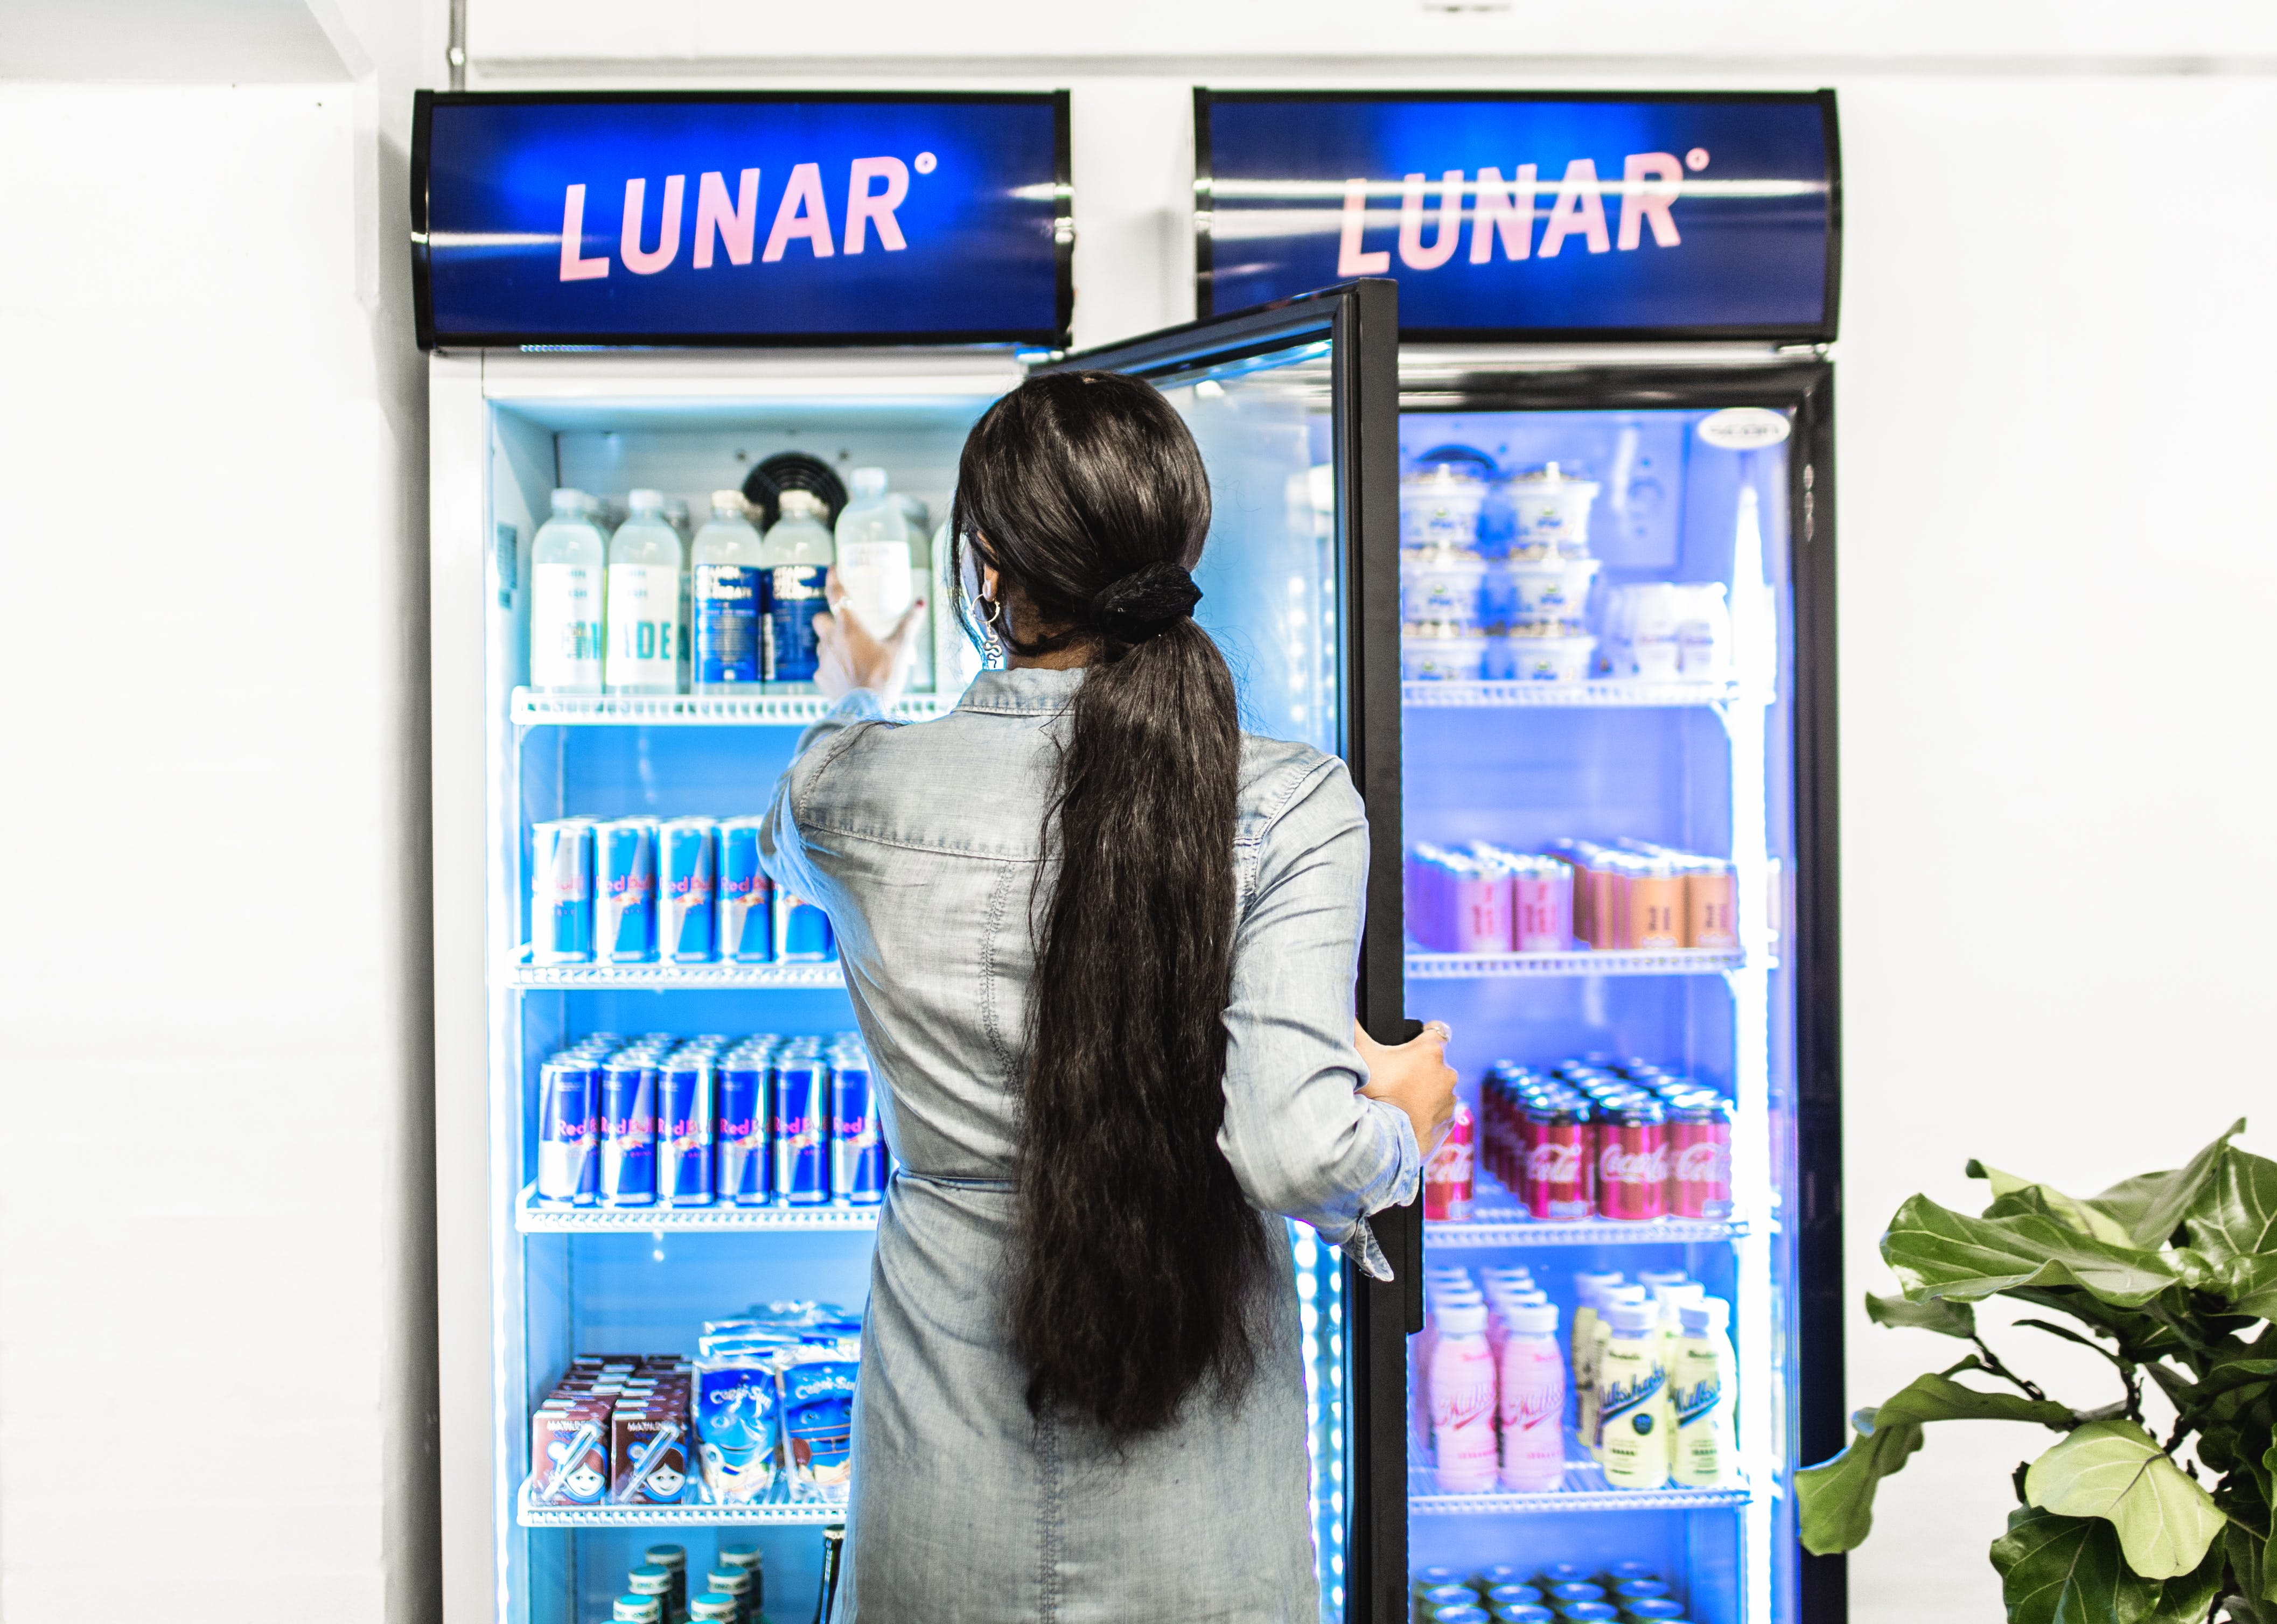 Lunar fridge